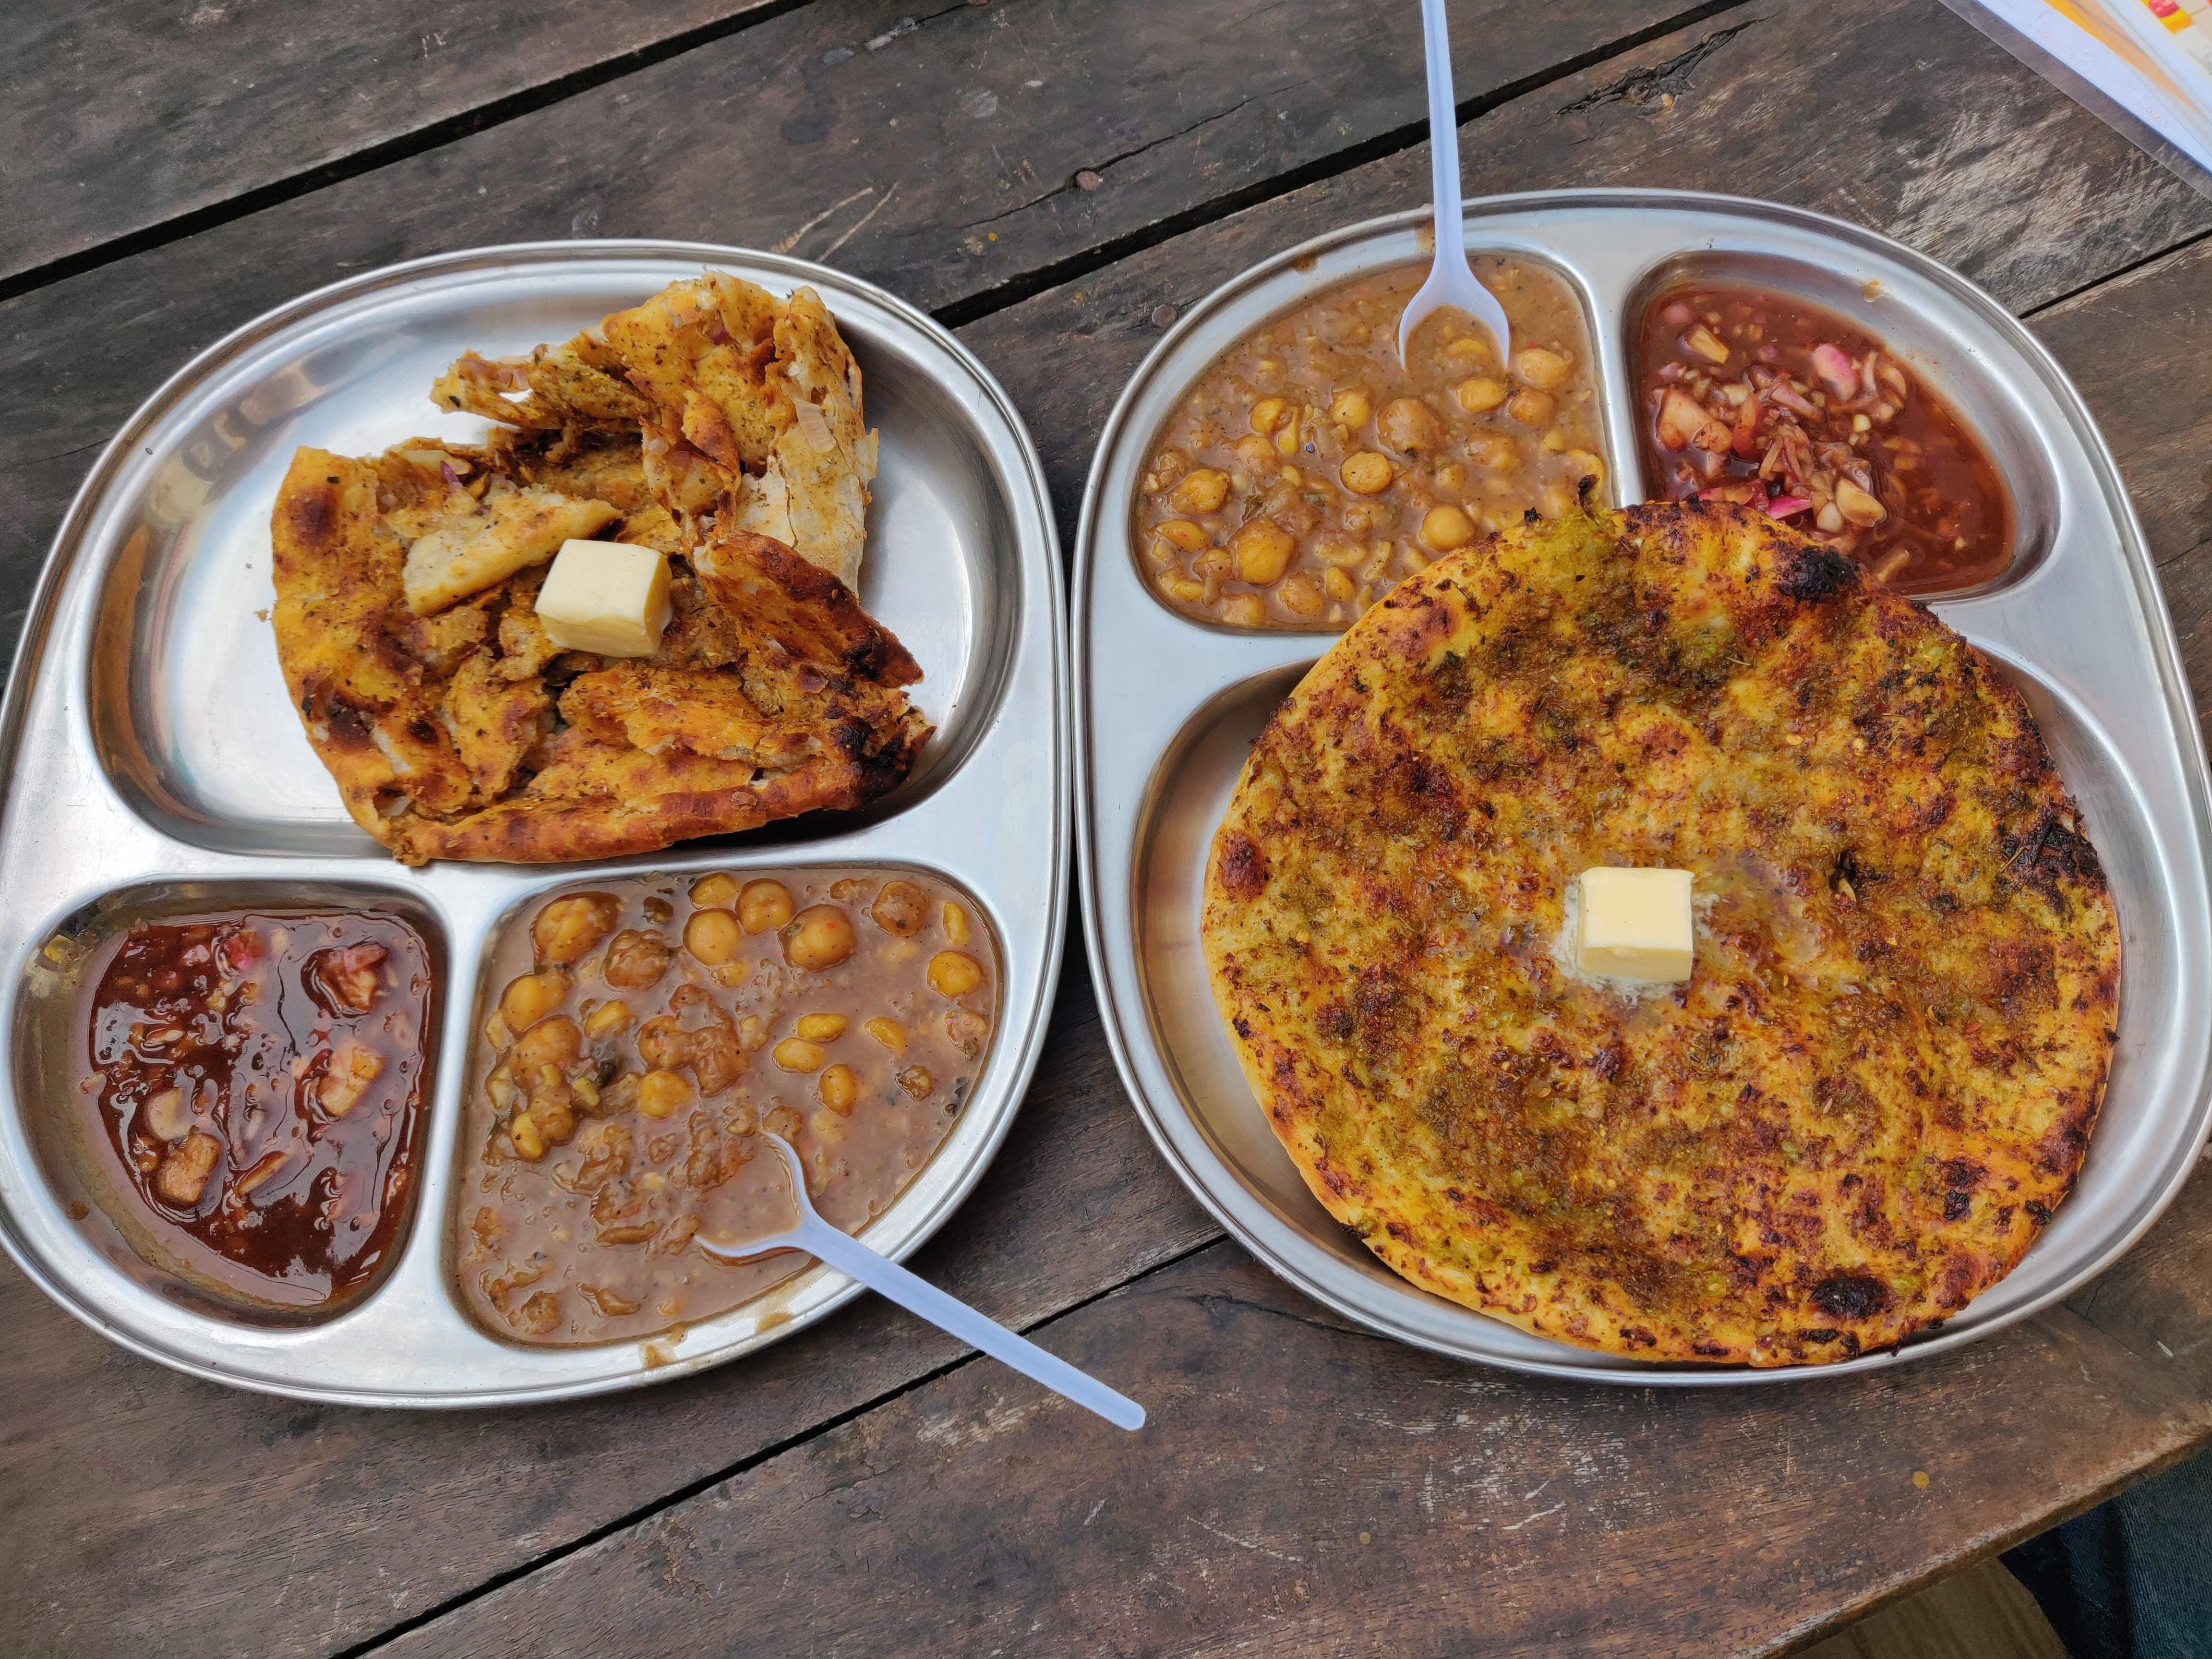 Dish,Food,Cuisine,Ingredient,Meal,Produce,Lunch,Curry,Recipe,Indian cuisine